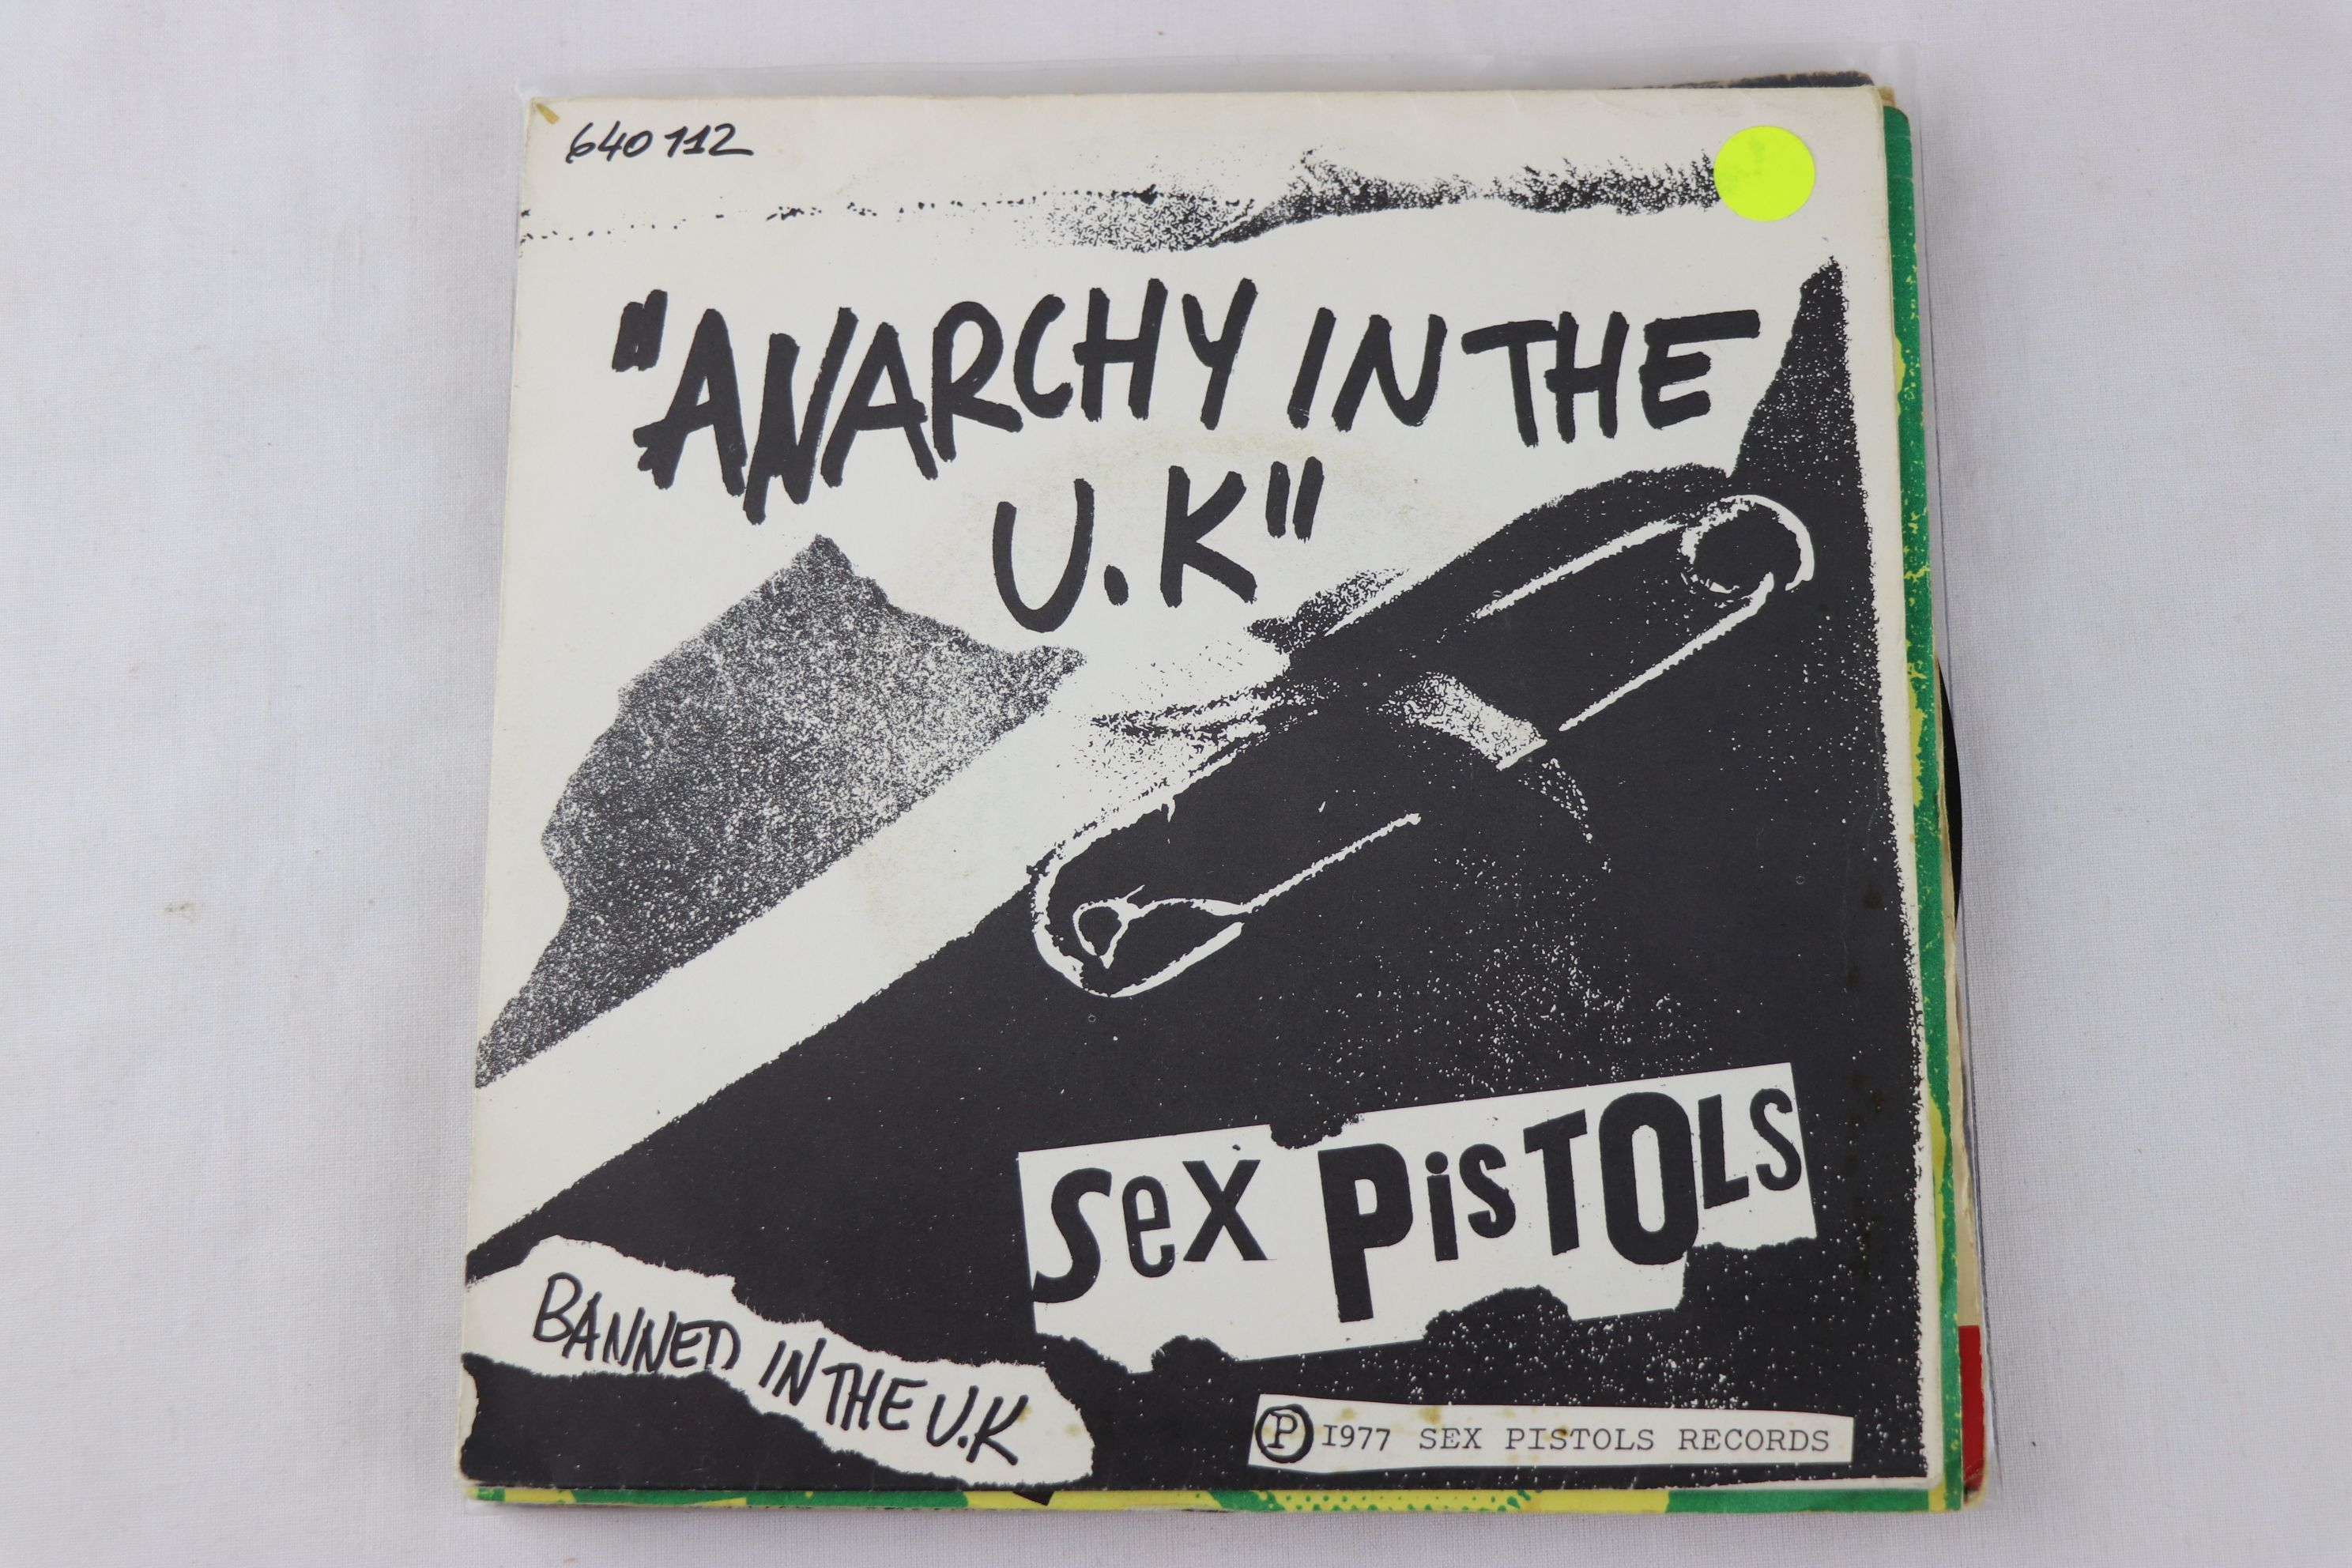 PUNK - SEX PISTOLS - PACK OF 7 ORIGINAL PRESSING SINGLES. 1. GOD SAVE THE QUEEN, 1977 VIRGIN RECORDS - Image 3 of 8